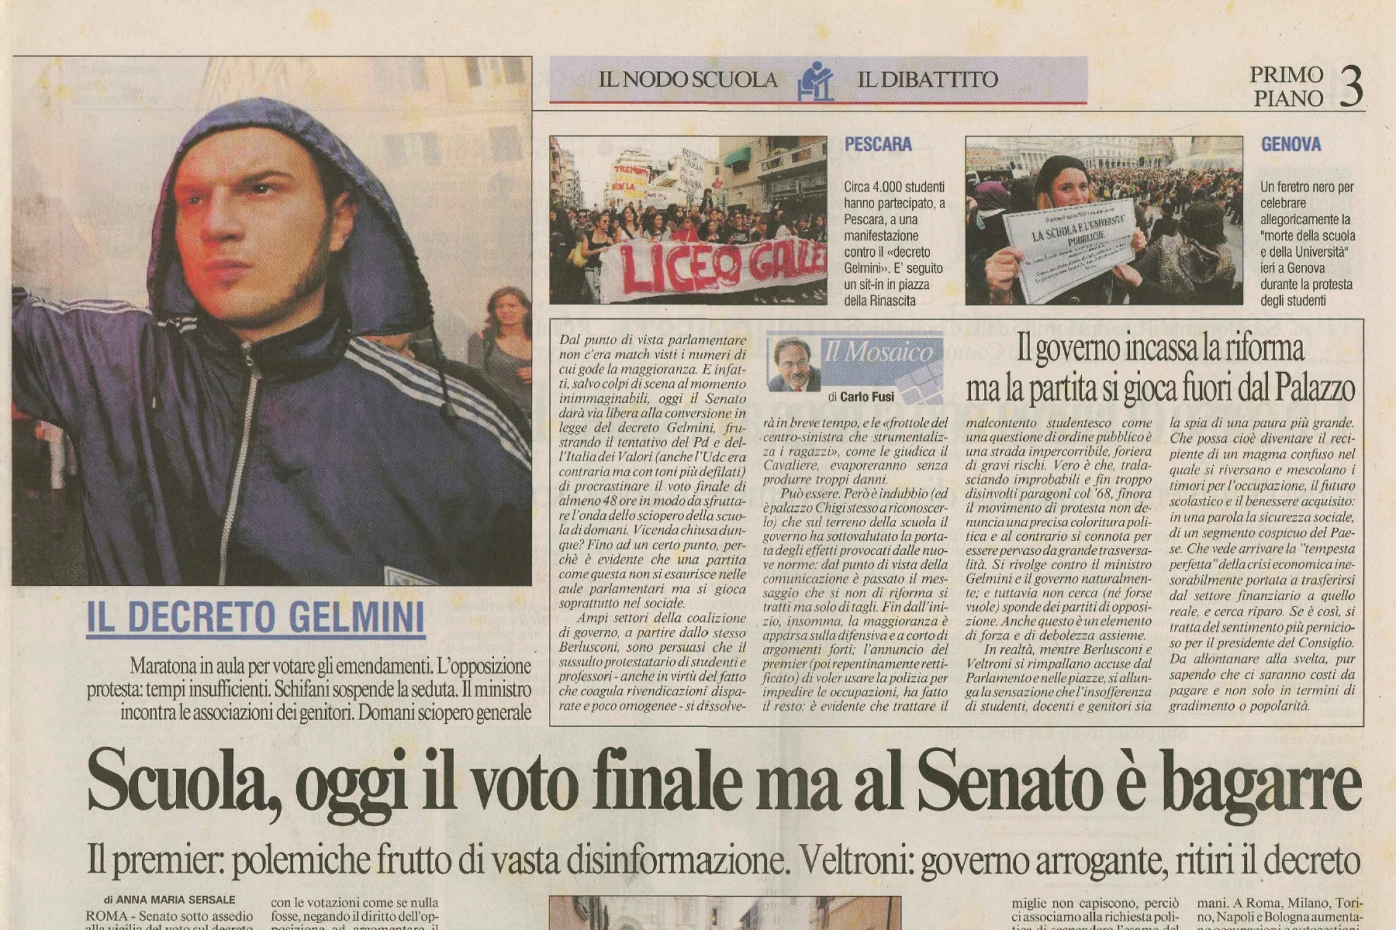 October 2008 - Students protest in Rome published in Il Messaggero